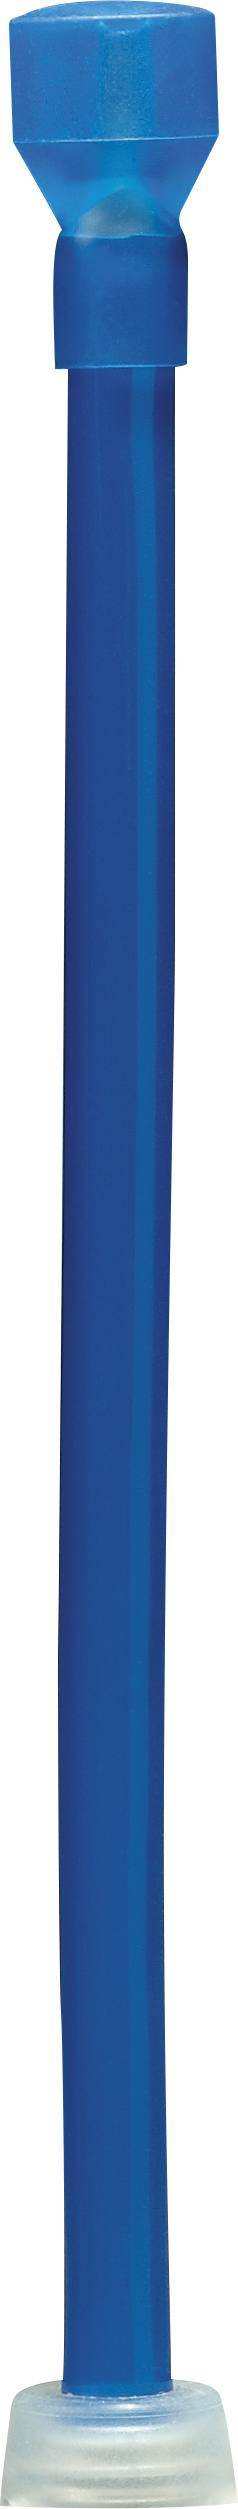 Camelbak Quick Stow Flask Tube Adapter